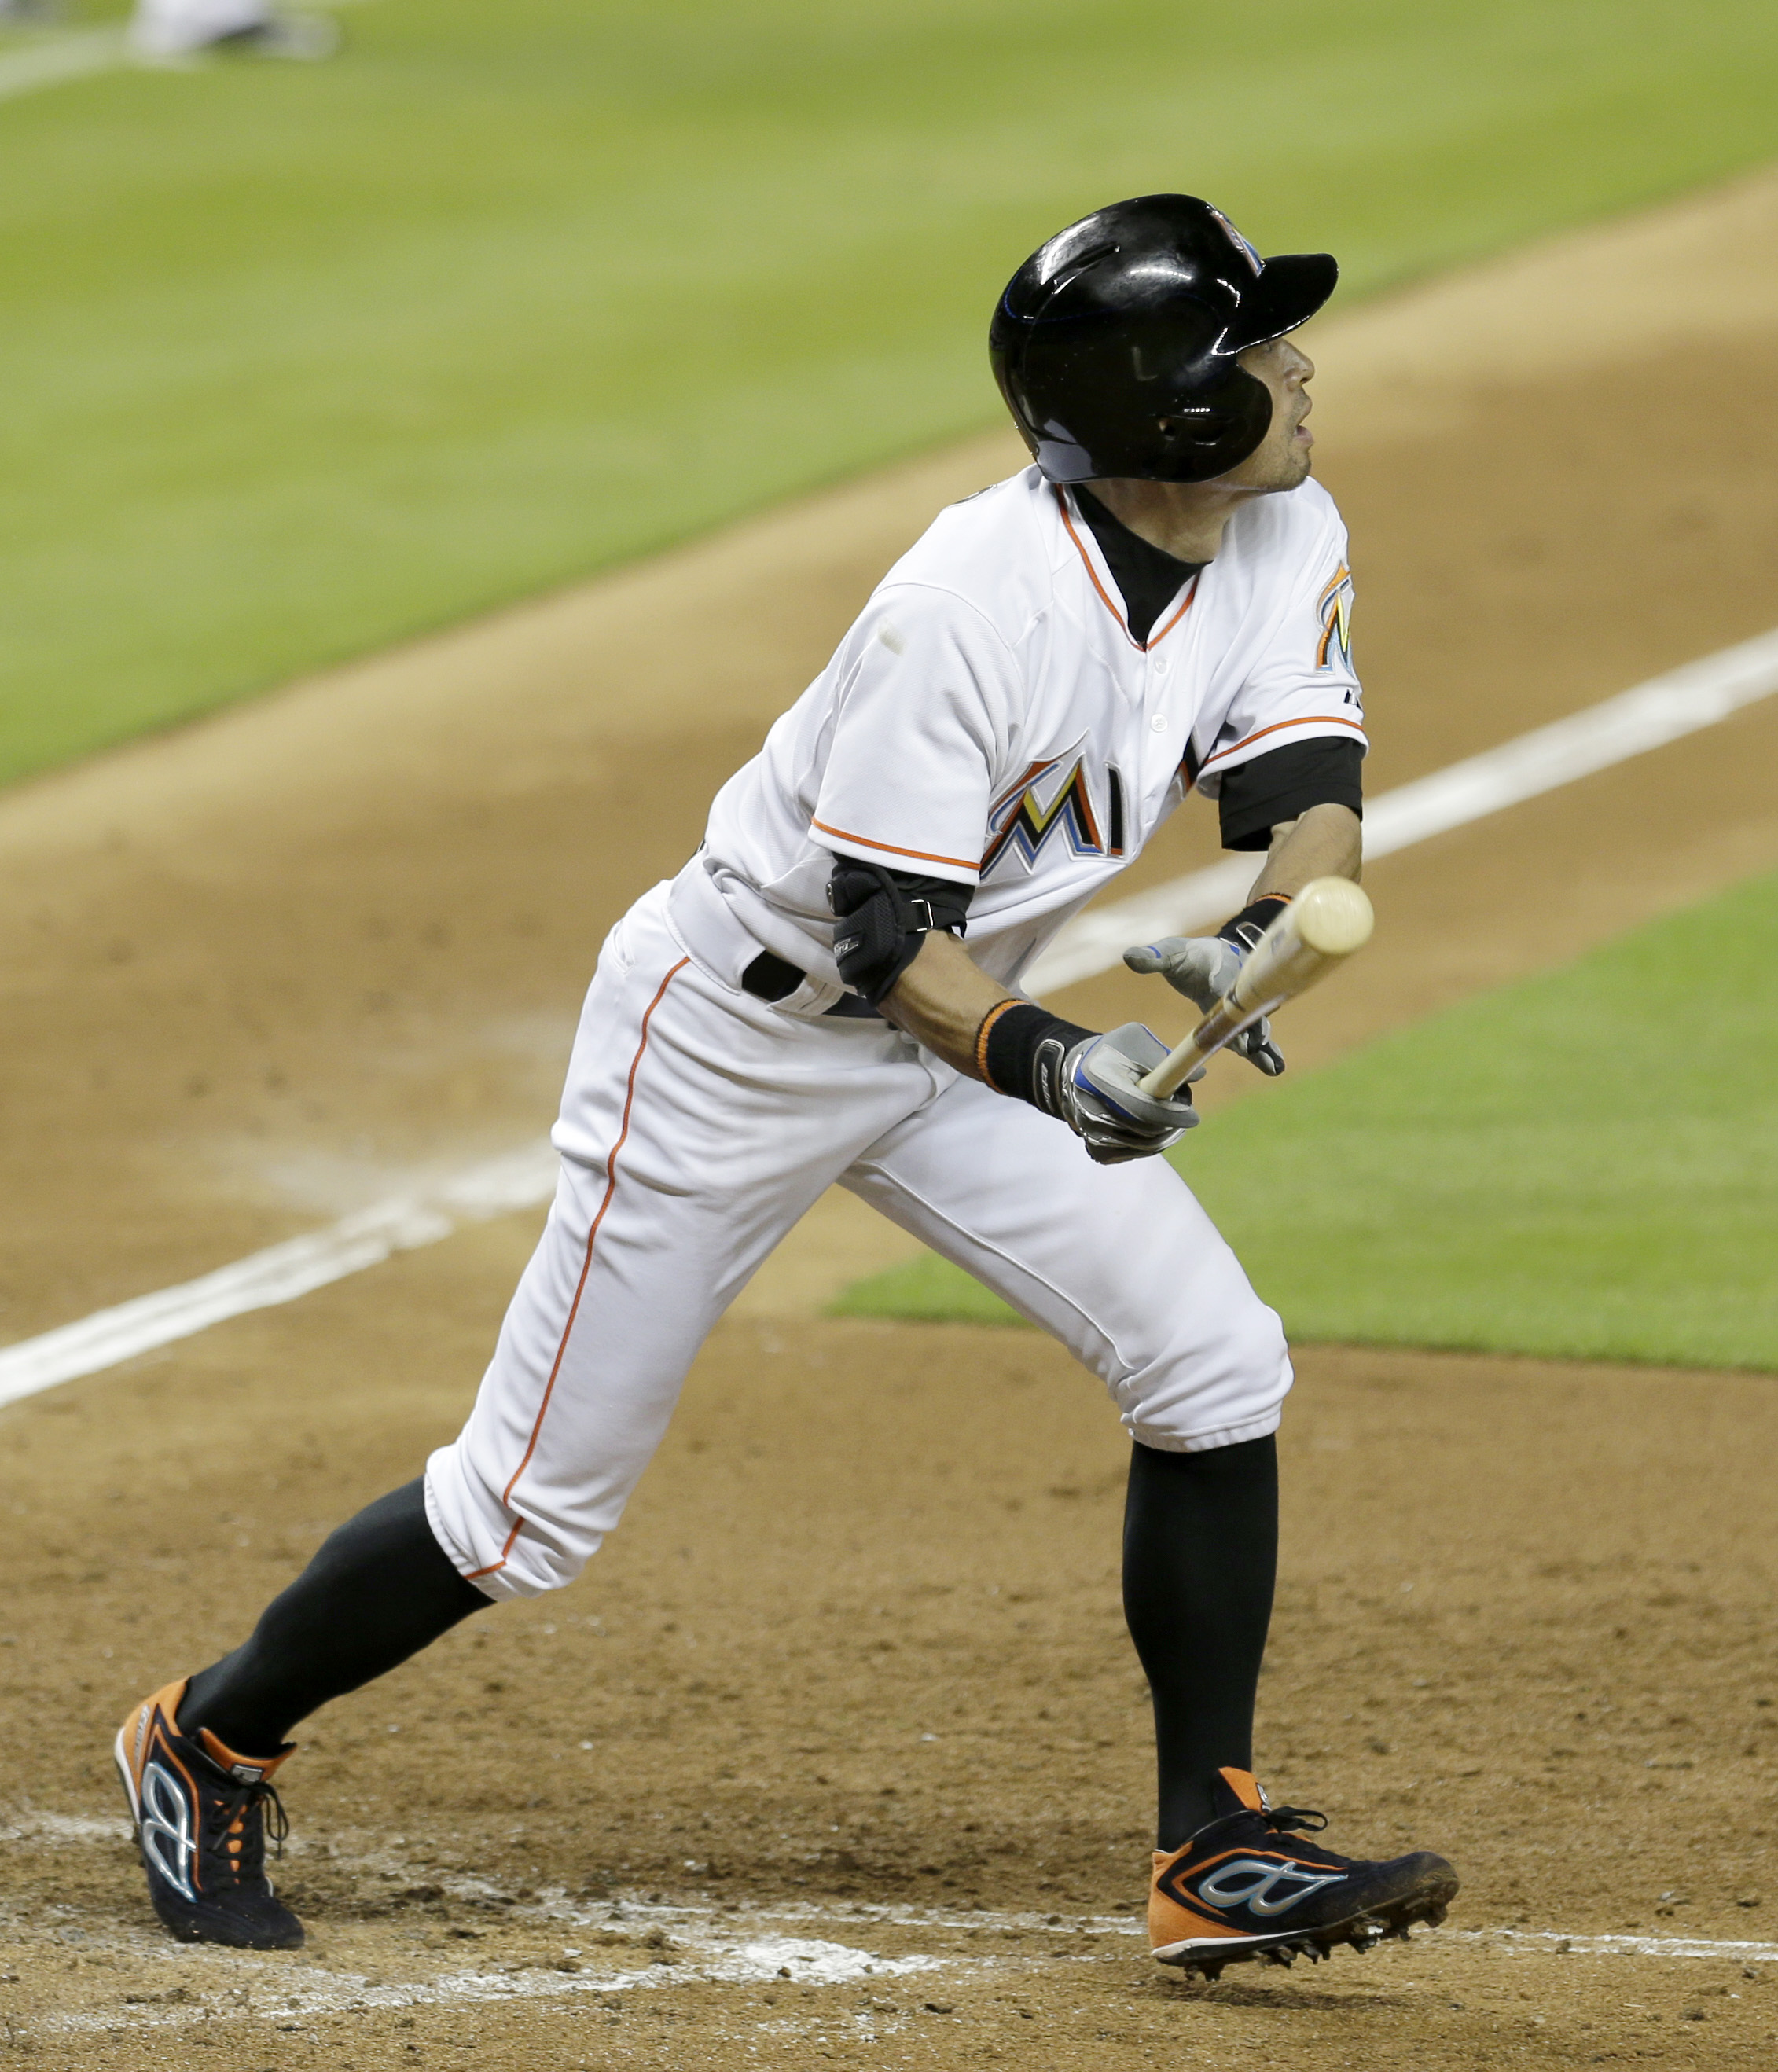 Miami Marlins' Ichiro Suzuki watches his sacrifice fly ball to right field against the Boston Red Sox in the seventh inning of a baseball game, Tuesday, Aug. 11, 2015, in Miami. Derek Dietrich scored on the sacrifice fly. The Marlins won 5-4. (AP Photo/Al